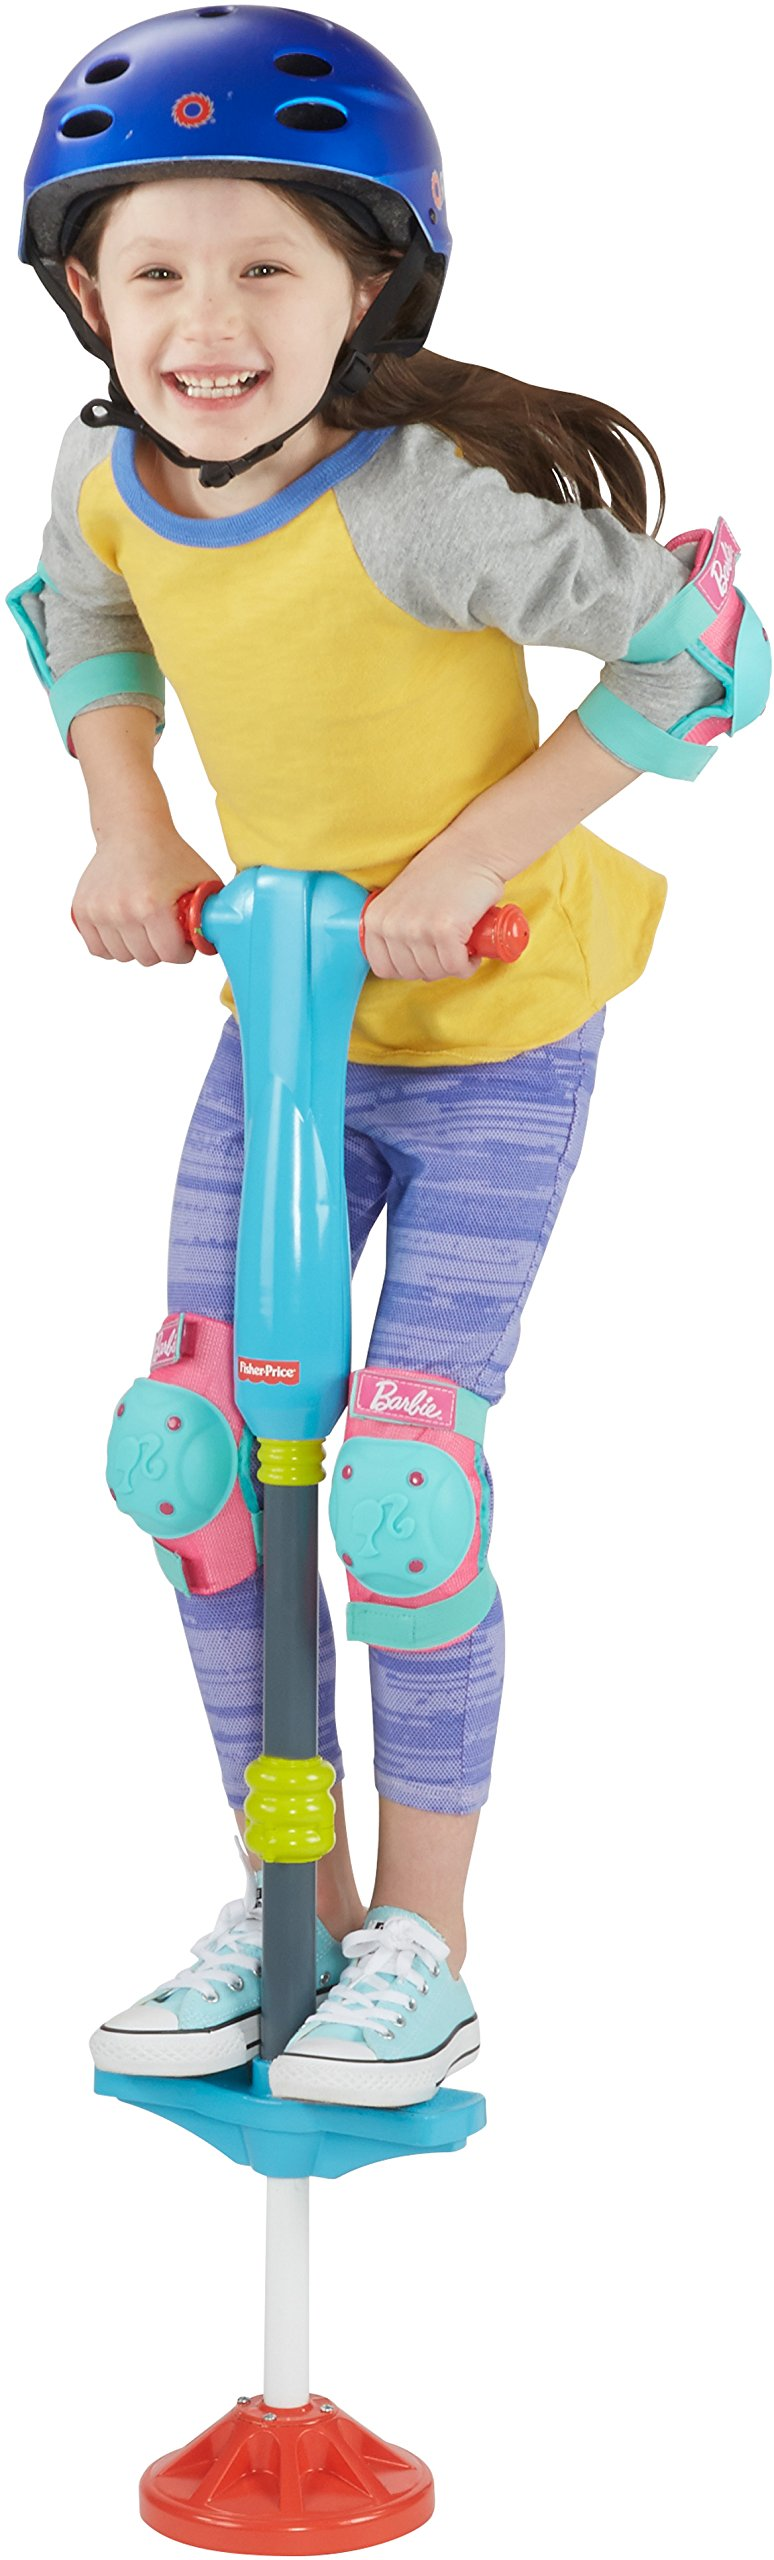 Fisher-Price Grow-to-Pro 3-in-1 Pogo by Fisher-Price (Image #3)